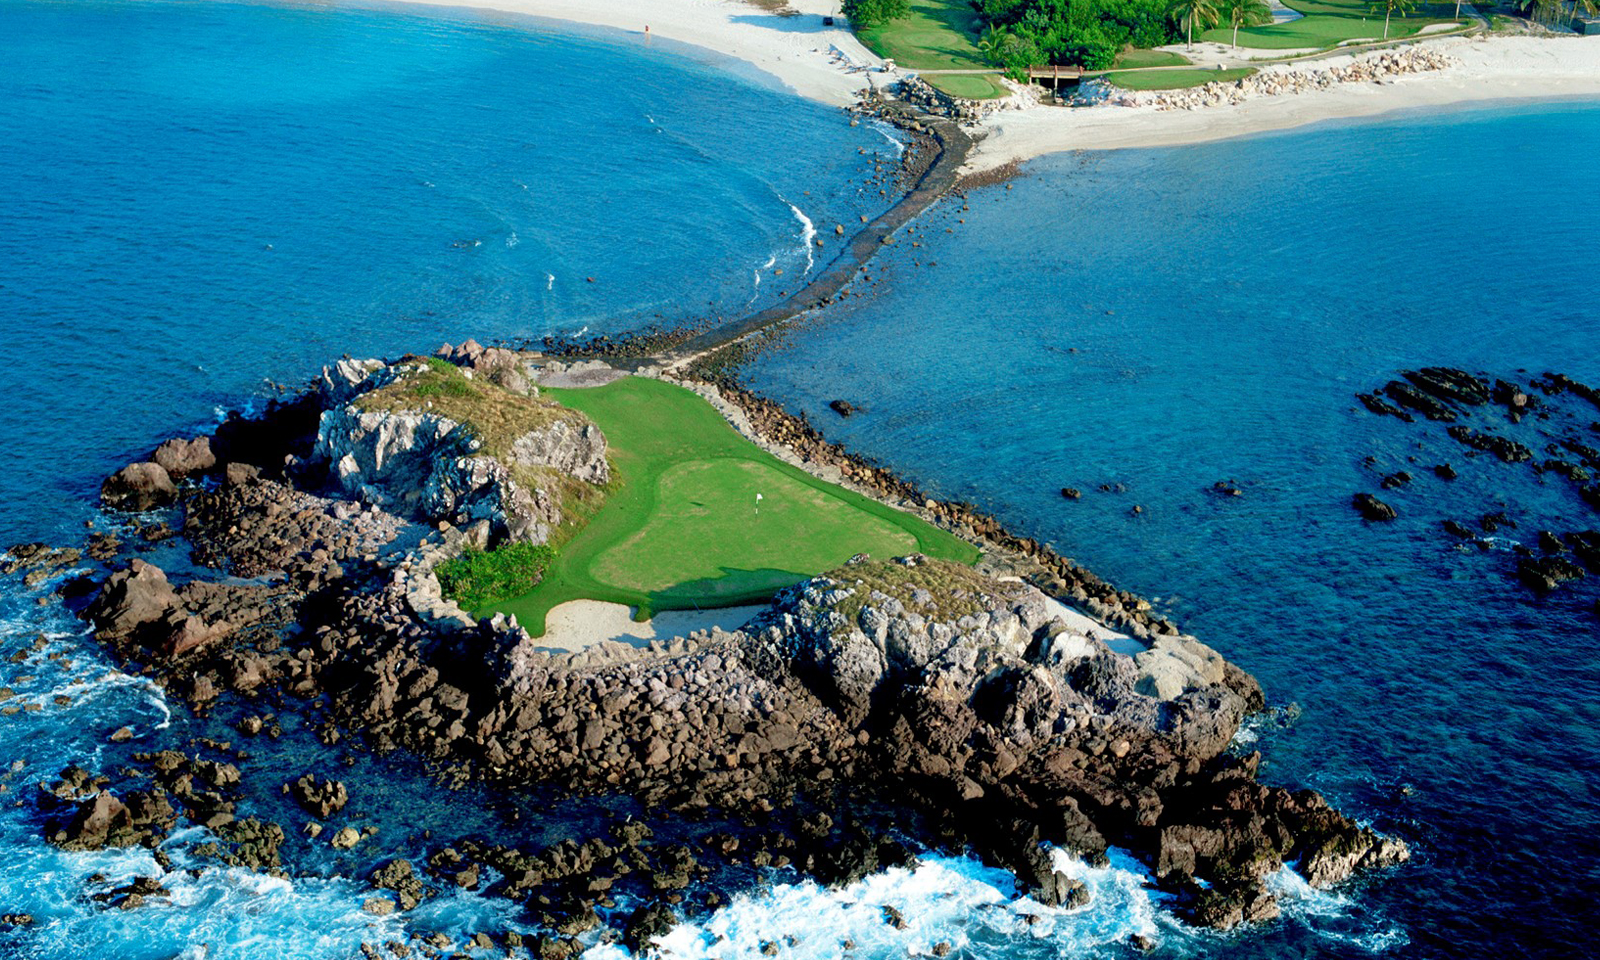 Punta Mita Gourmet & Golf Classic hosted by The St. Regis Punta Mita